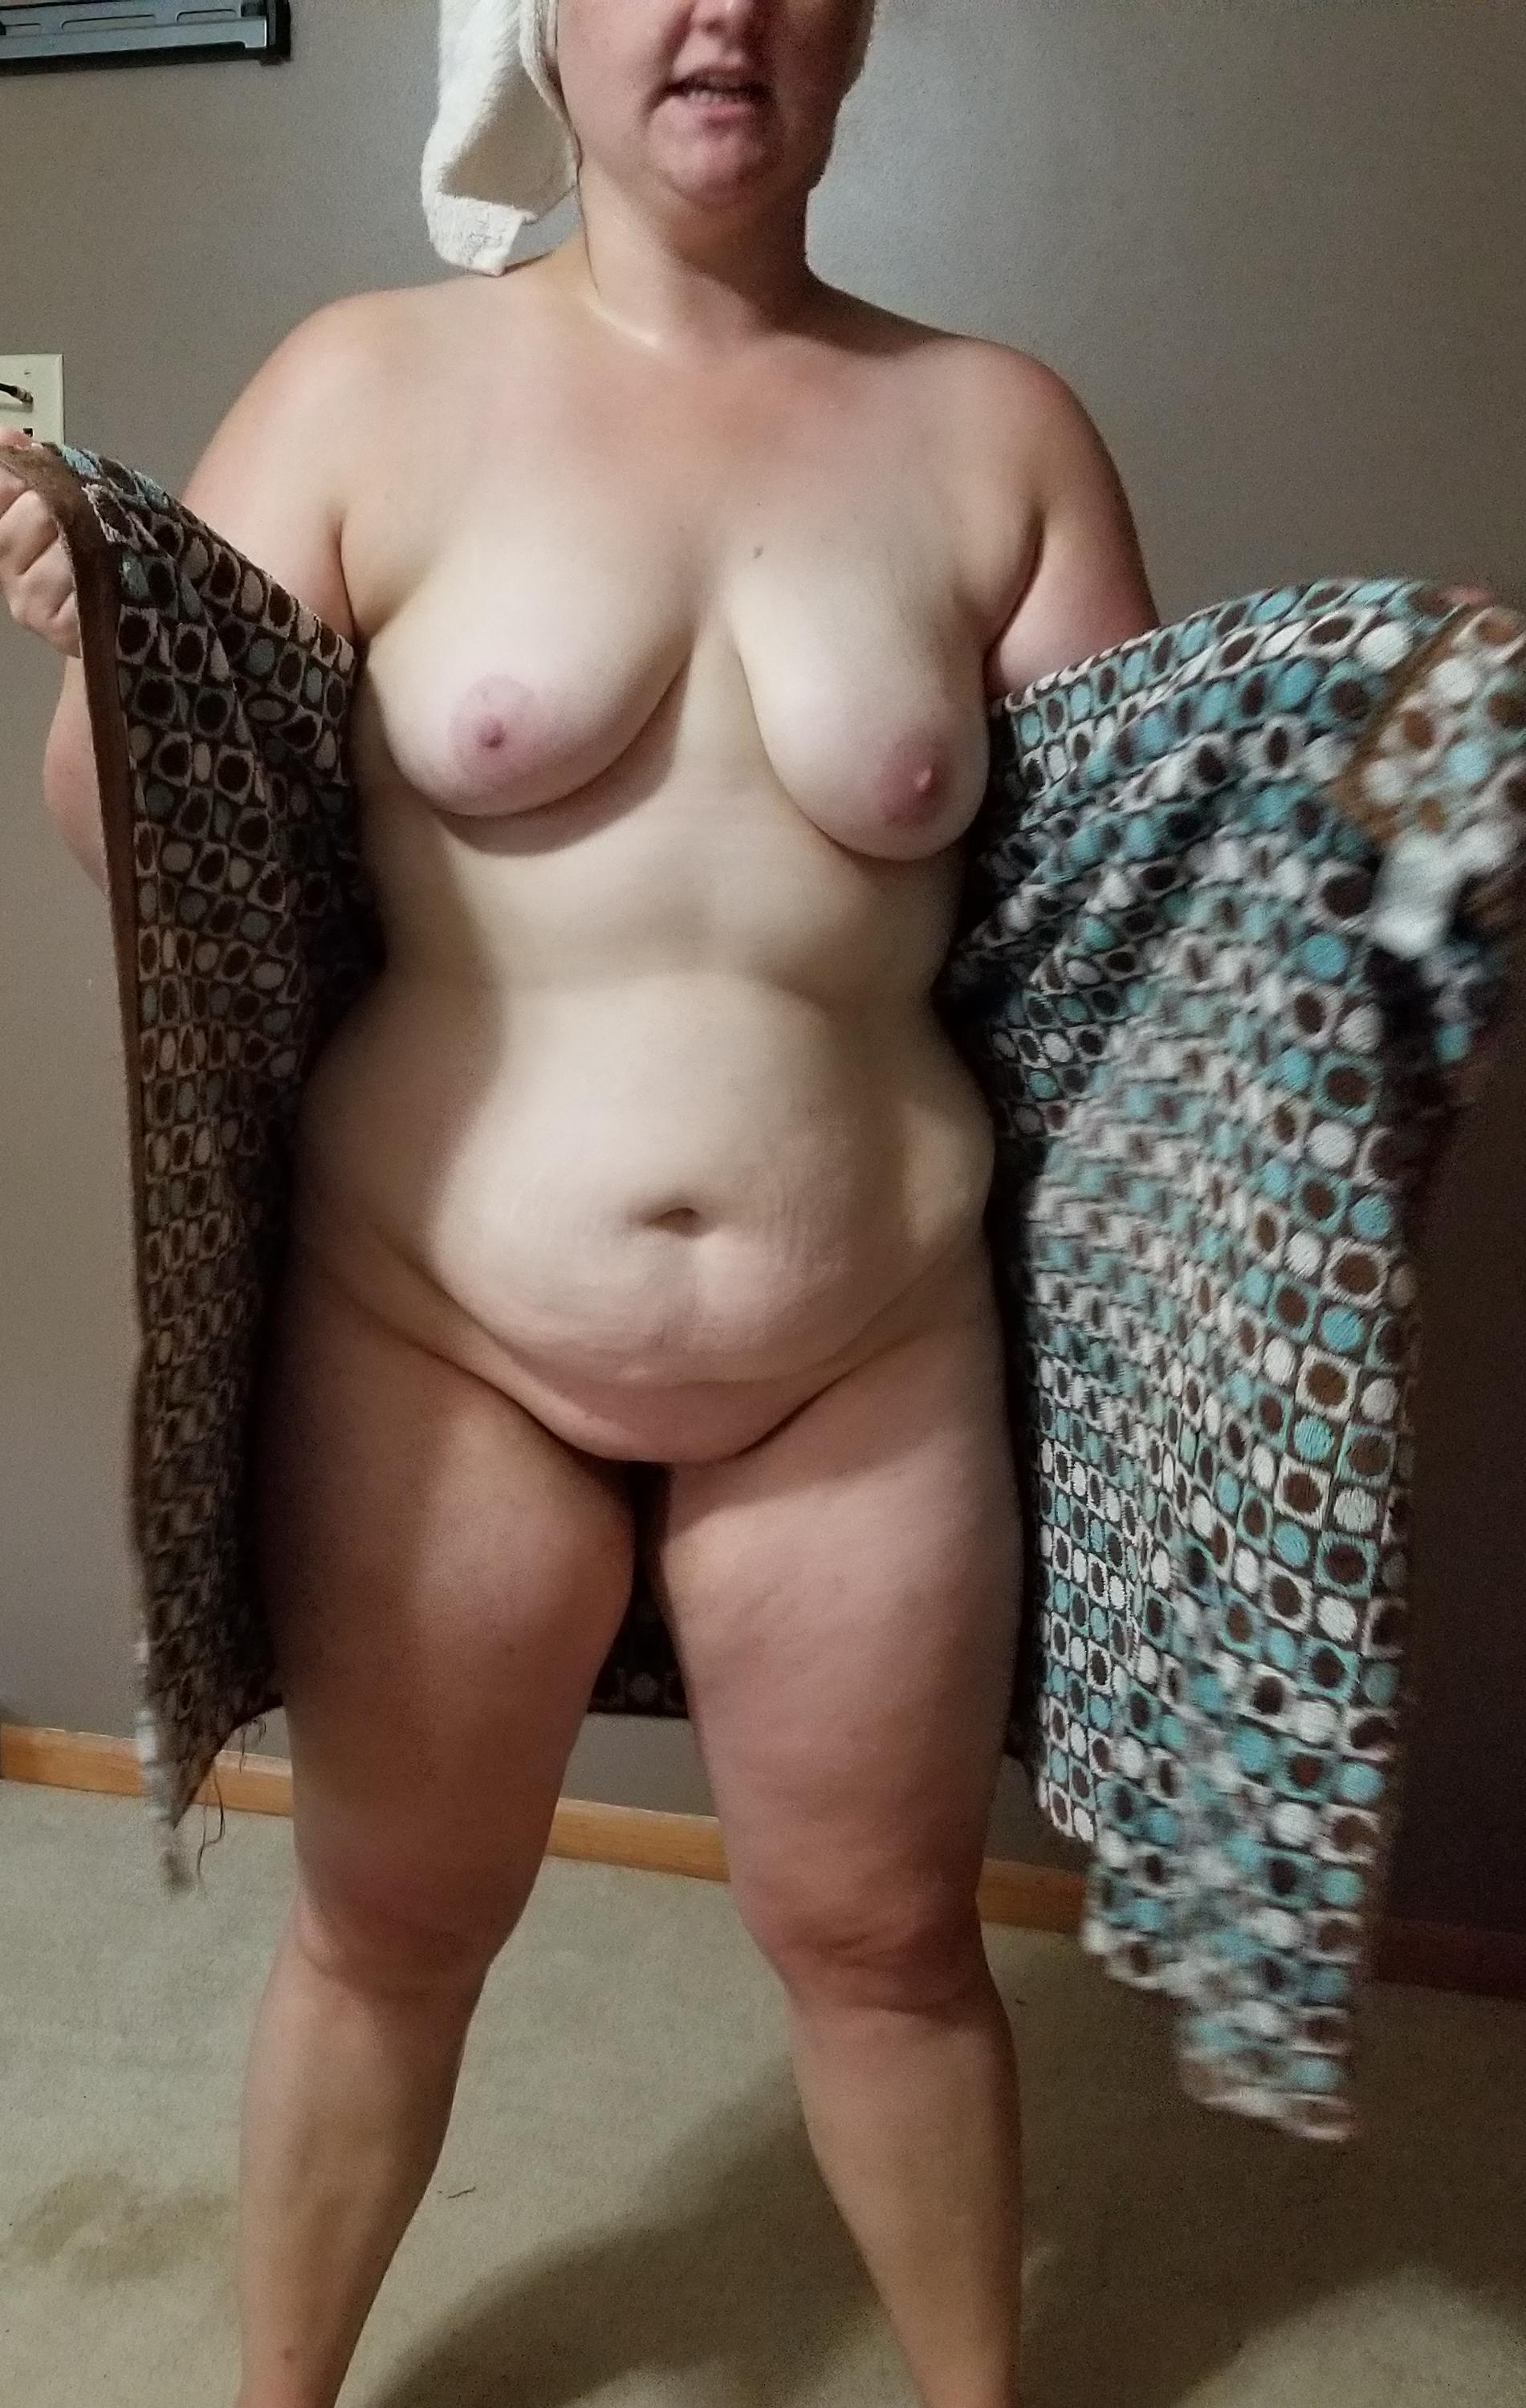 30 Year Old Porn shower time for these 30 year old tits porn pic - eporner